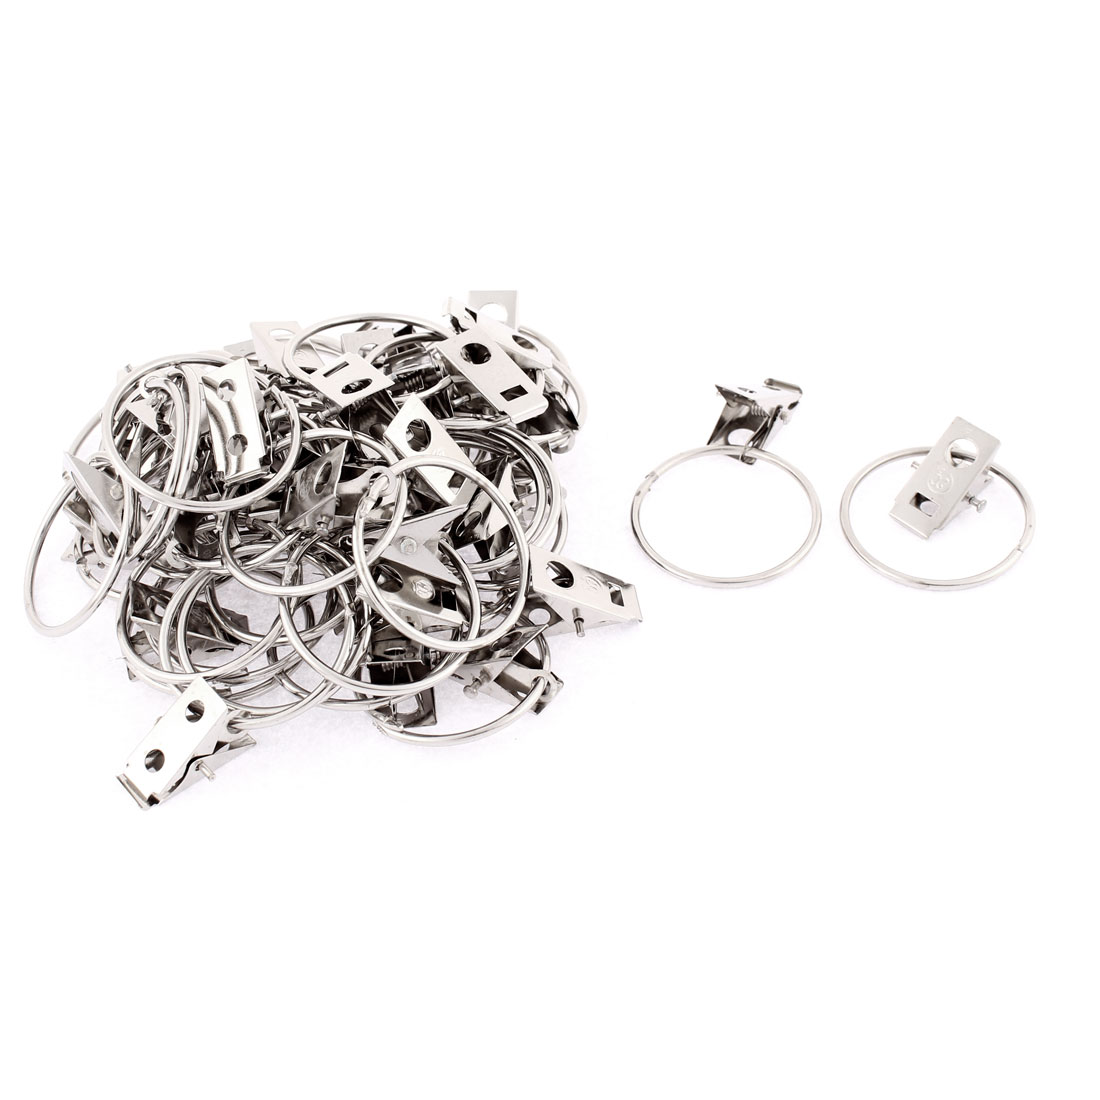 40pcs 32mm Dia. Stainless Steel Window Curtain Clip Hook Drapery Wire Rod Rings